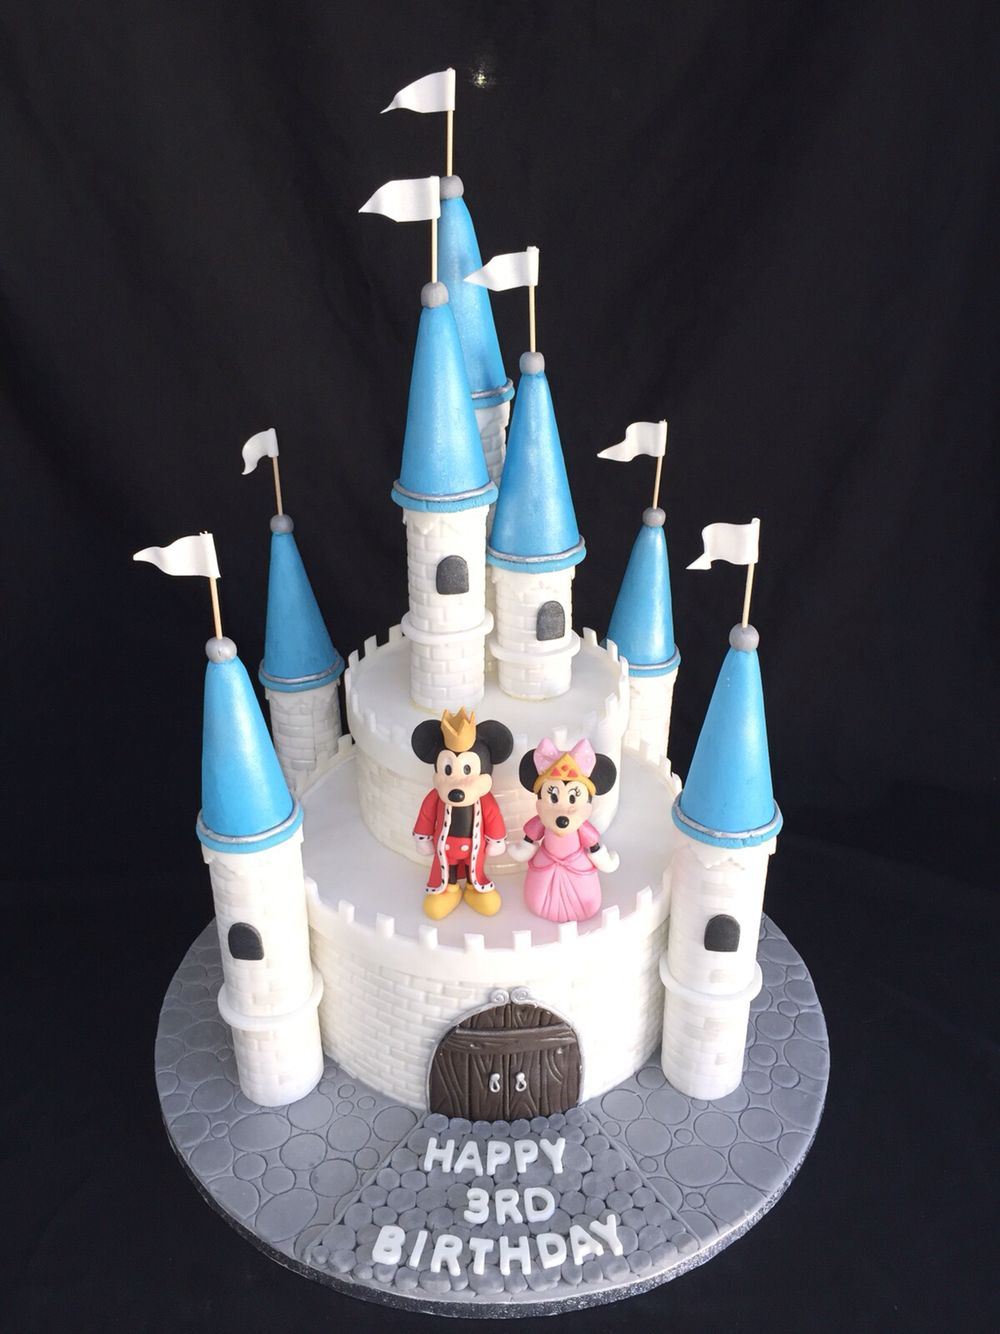 Remarkable Disney Castle Cake With Modelled Mickey And Minnie Mouse Disney Funny Birthday Cards Online Inifofree Goldxyz